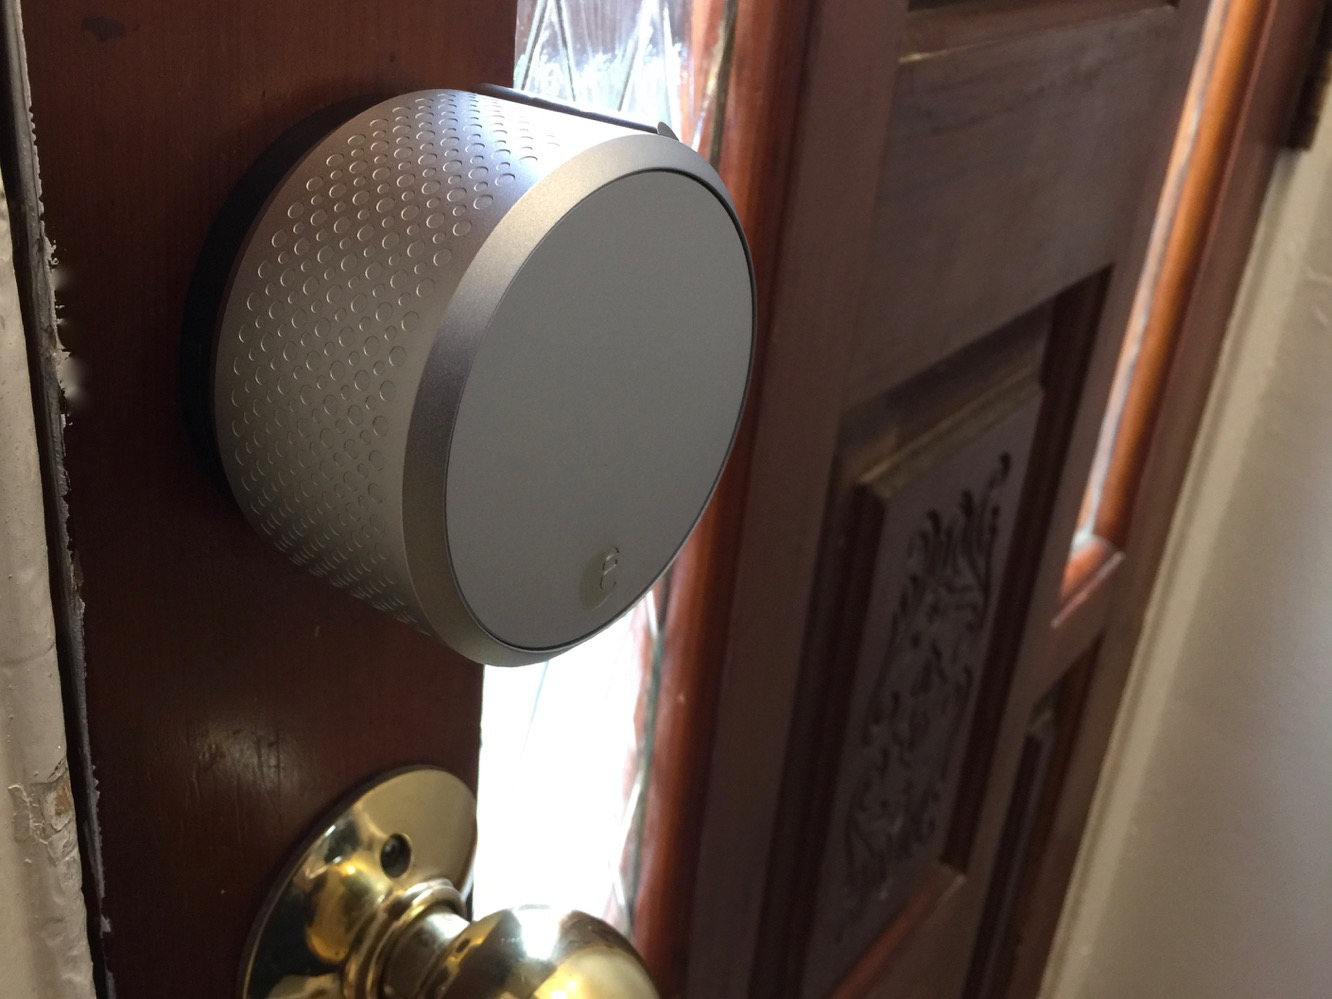 Review: August Smart Lock HomeKit enabled + Smart Keypad